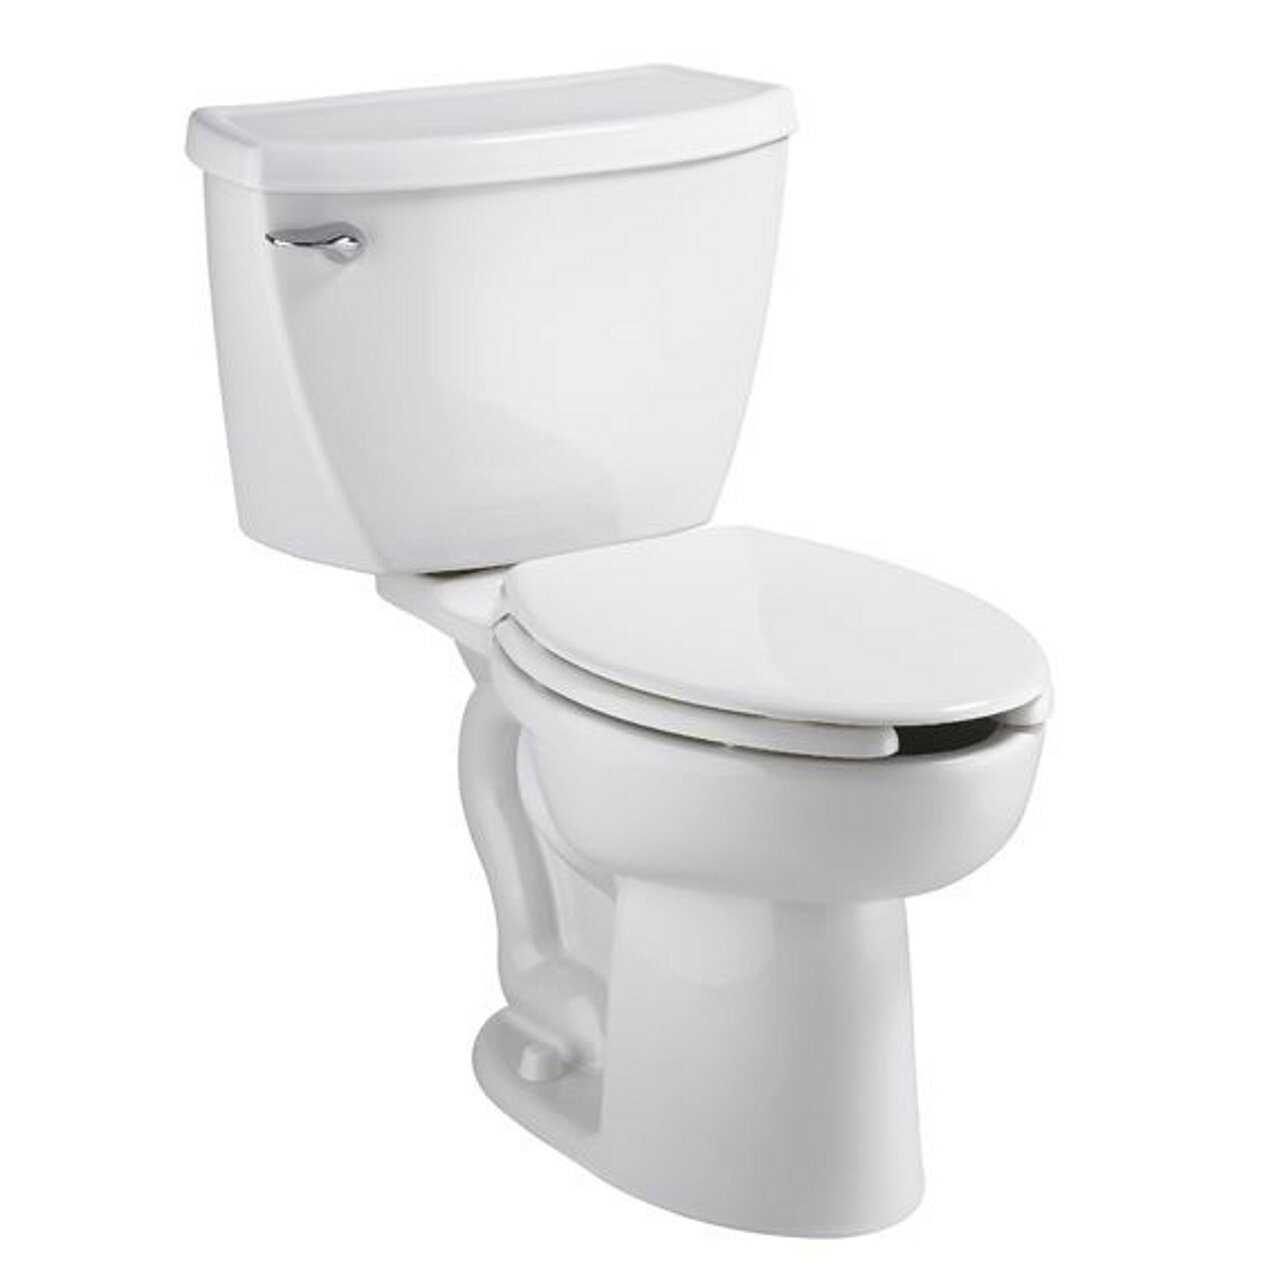 American Standard 2467.100.020 Cadet Flowise Pressure Assisted Elongated Right-Height Two-Piece Toilet with EverClean, White